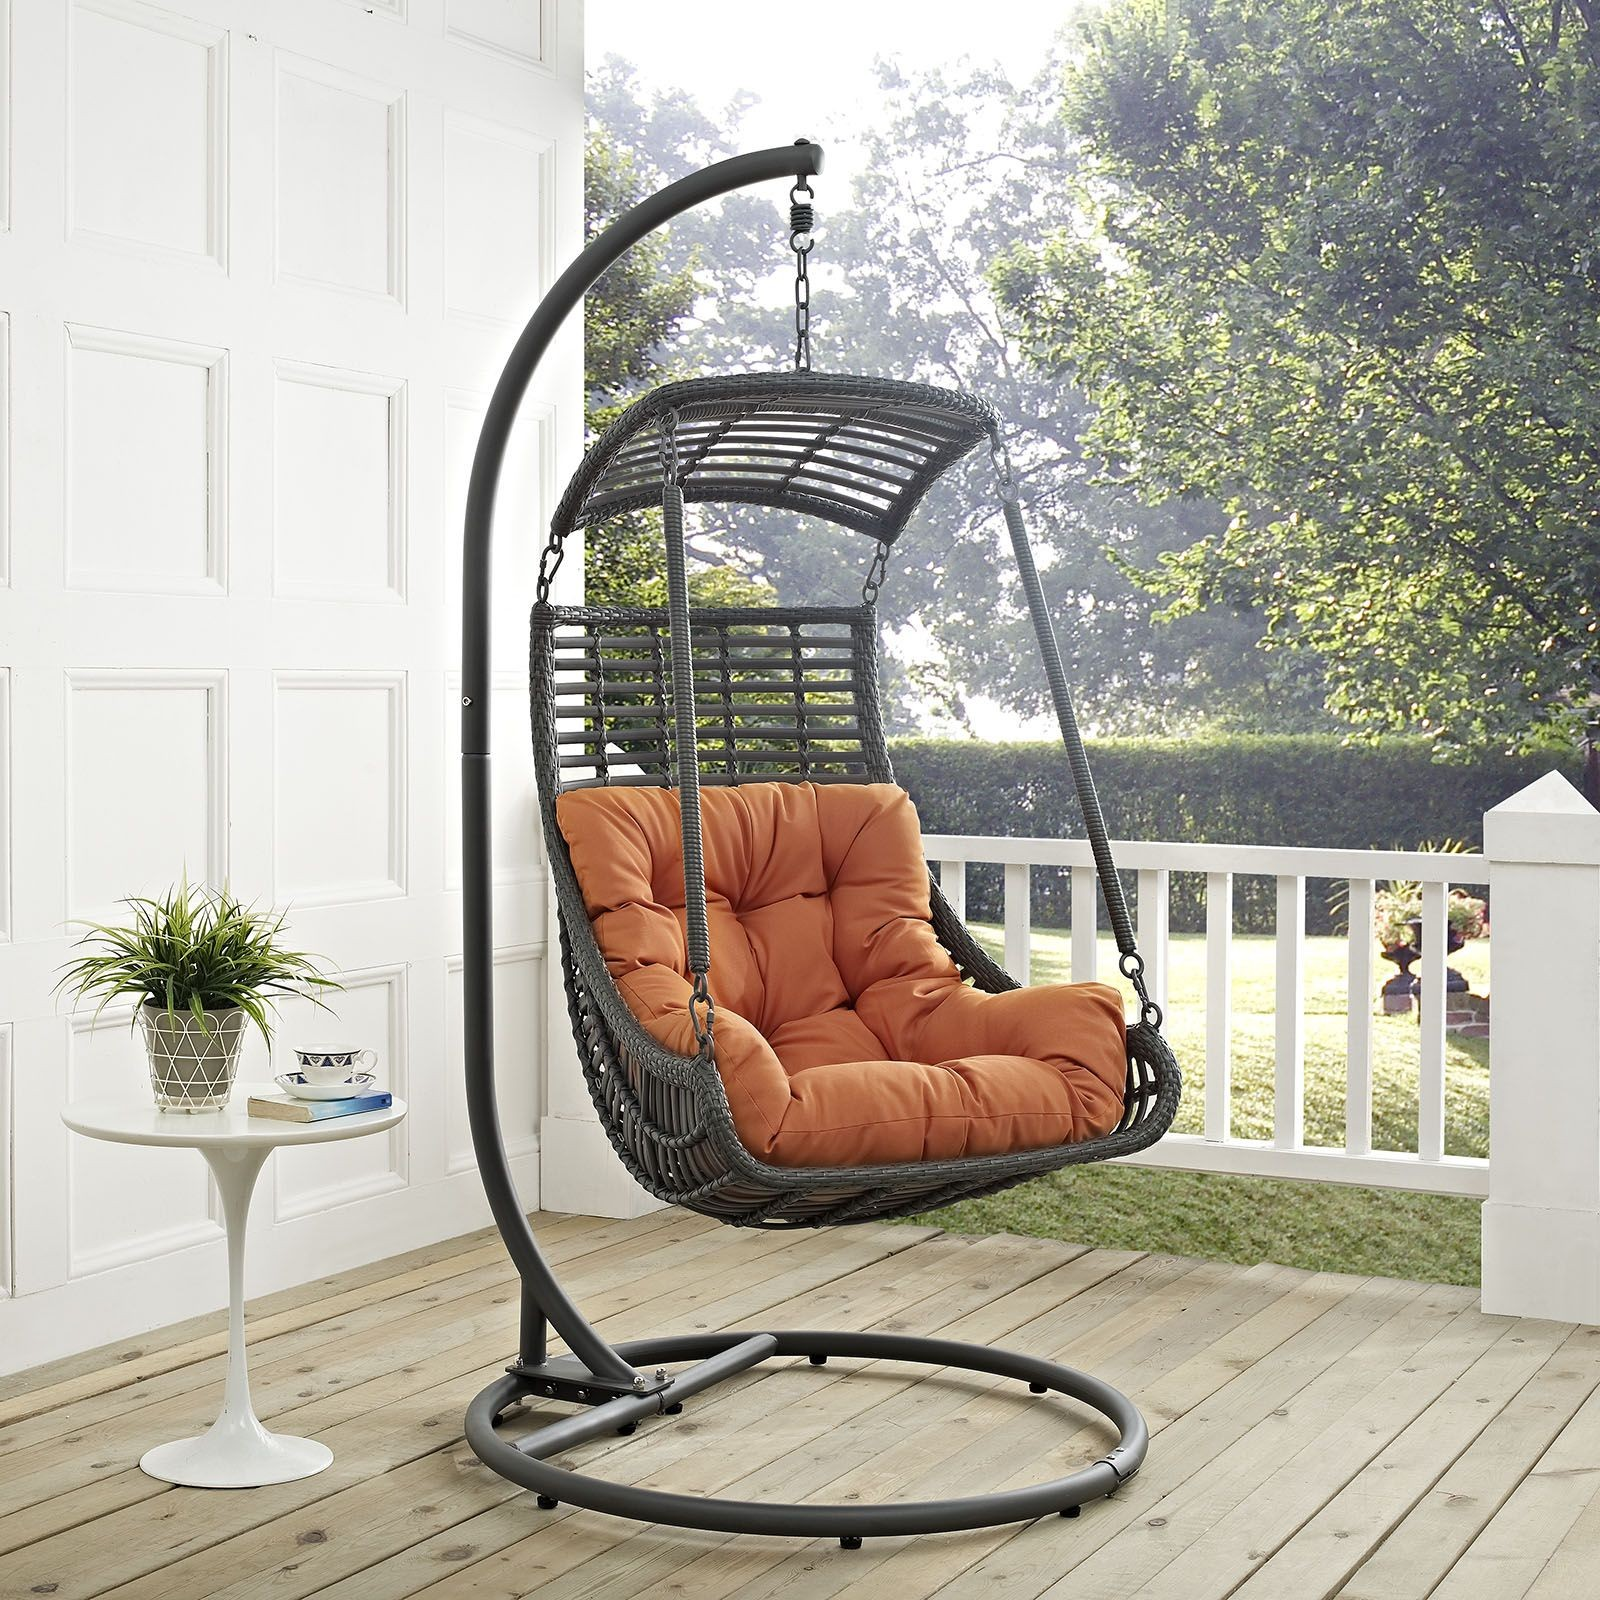 jungle orange outdoor patio swing chair with stand eei 2274 ora set renegade furniture. Black Bedroom Furniture Sets. Home Design Ideas